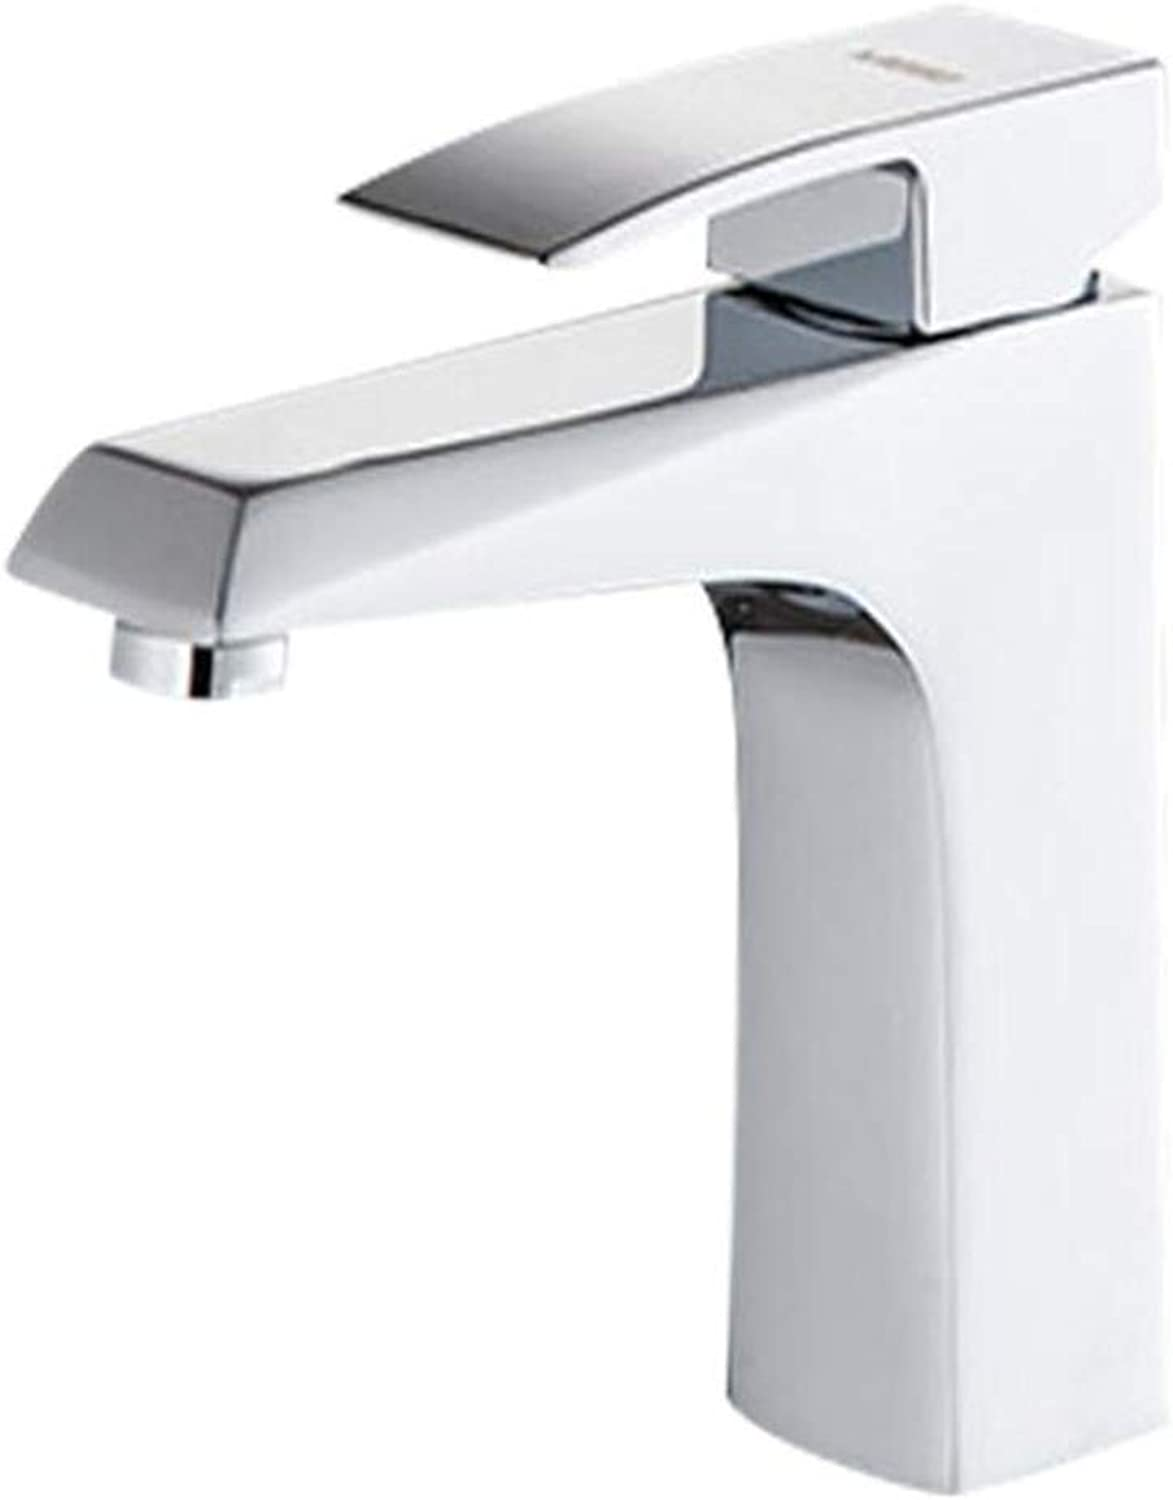 Basin Sink Mixer Faucet Refined Copper Kitchen Sink General Cold and Hot Water